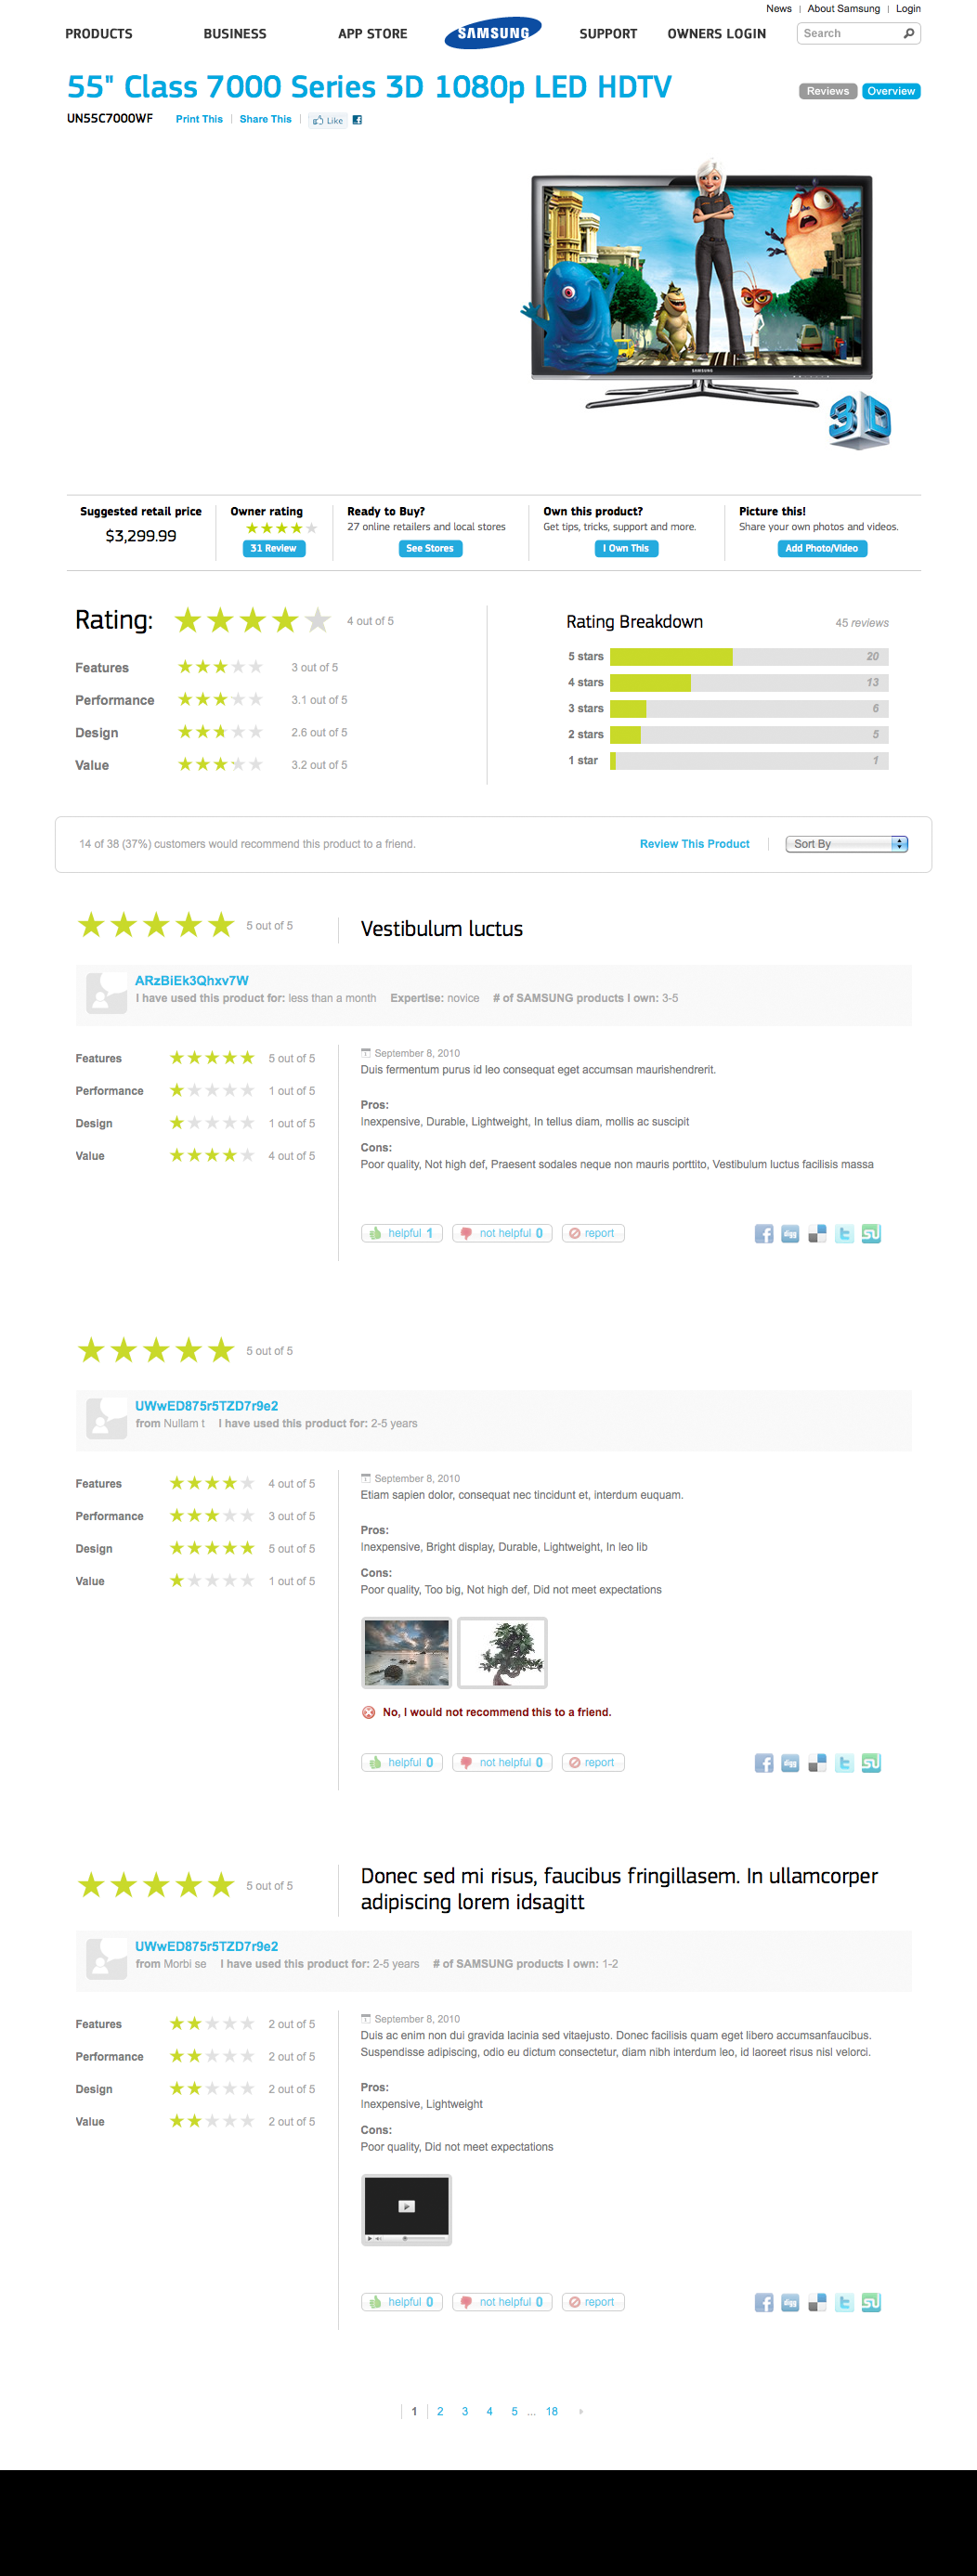 Samsung's redesigned ratings and reviews display (completed in 2010)